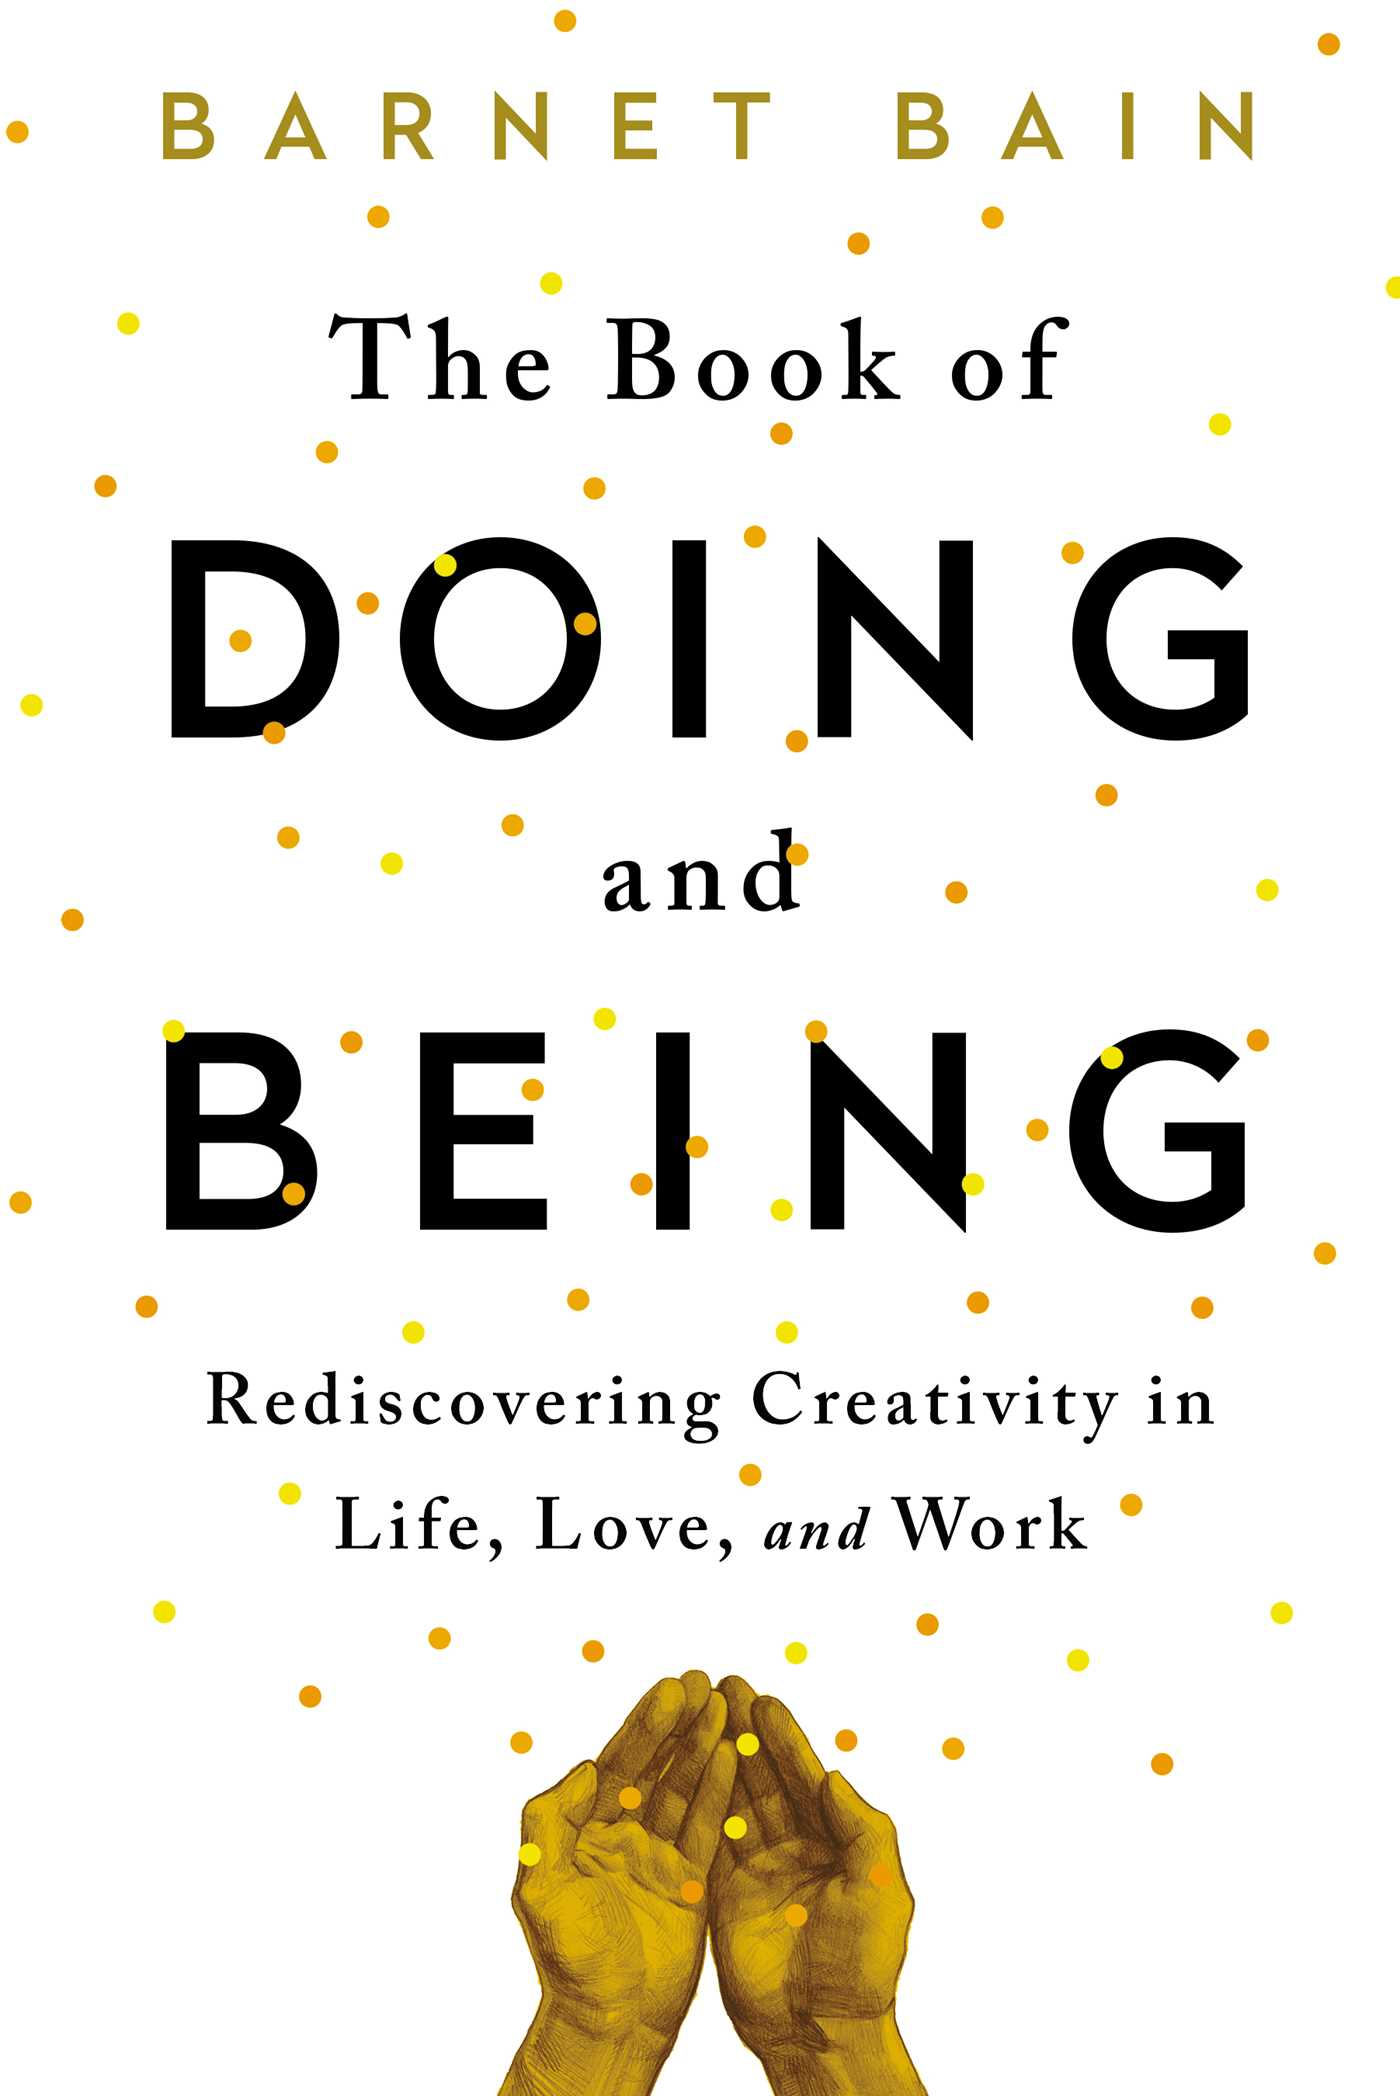 The Book Of Doing And Being  Book By Barnet Bain  Official Publisher Page   Simon & Schuster